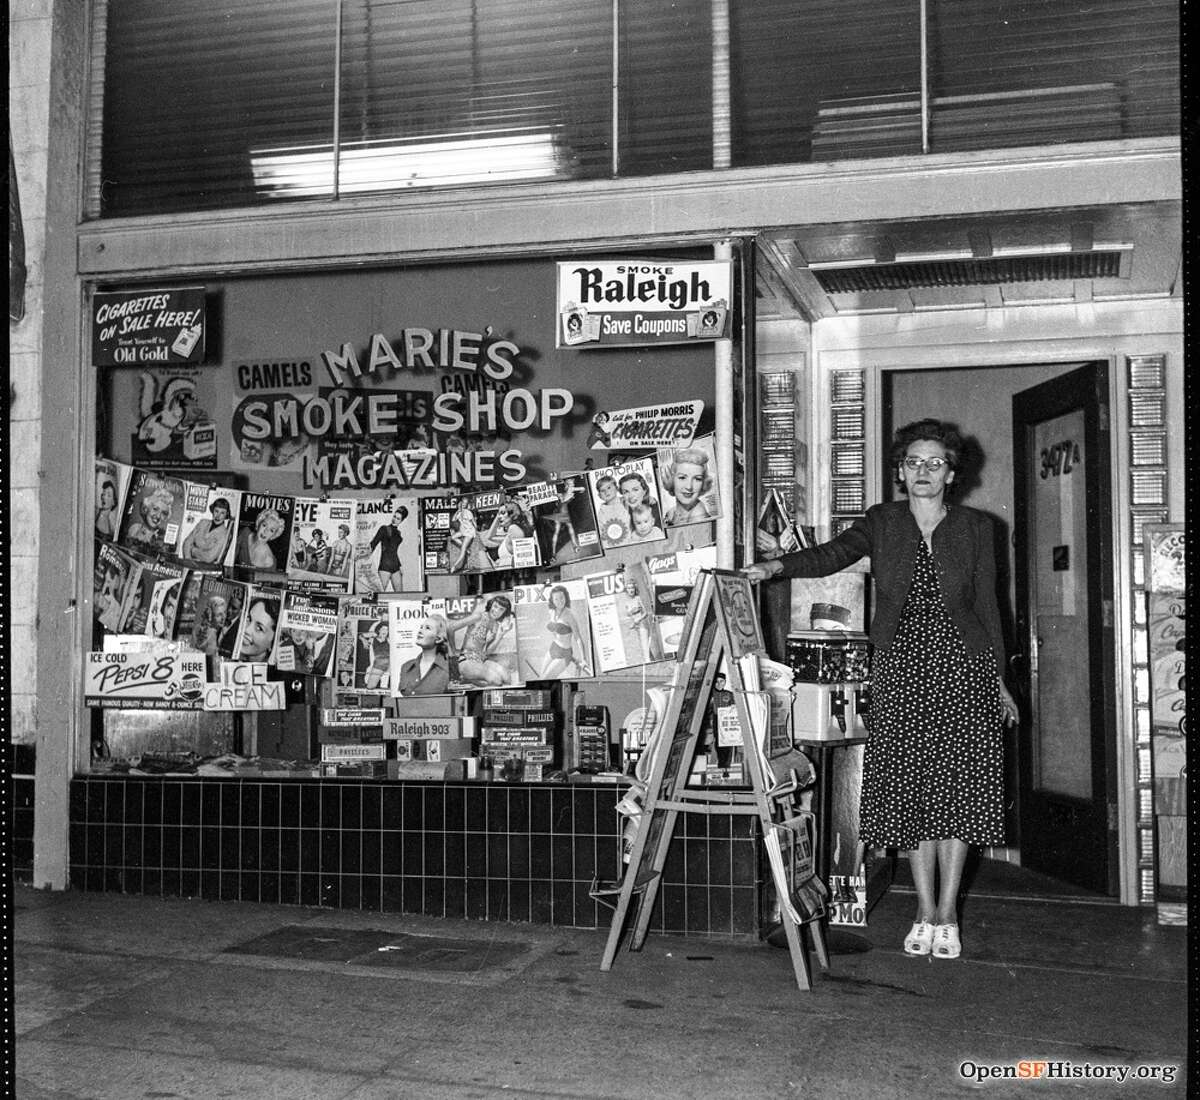 3472 Mission Street 1950, Marie's Smoke Shop Exterior, magazines in window. San Francisco's Bernal Heights district. Courtesy of OpenSFHistory.org.